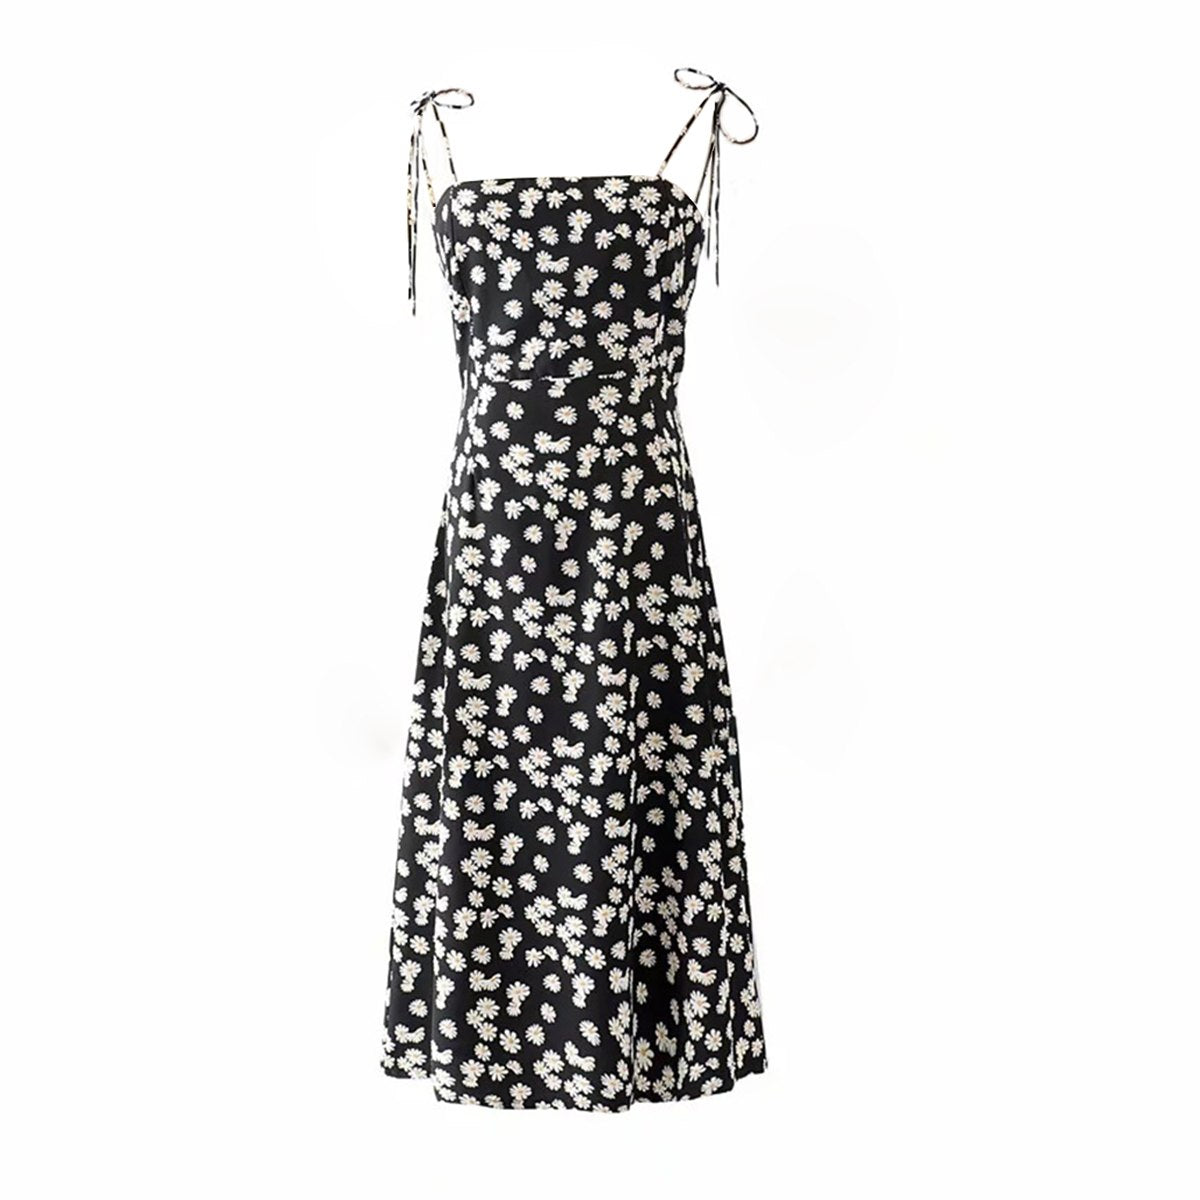 Black Floral Midi Dress  - Zaida Fashions